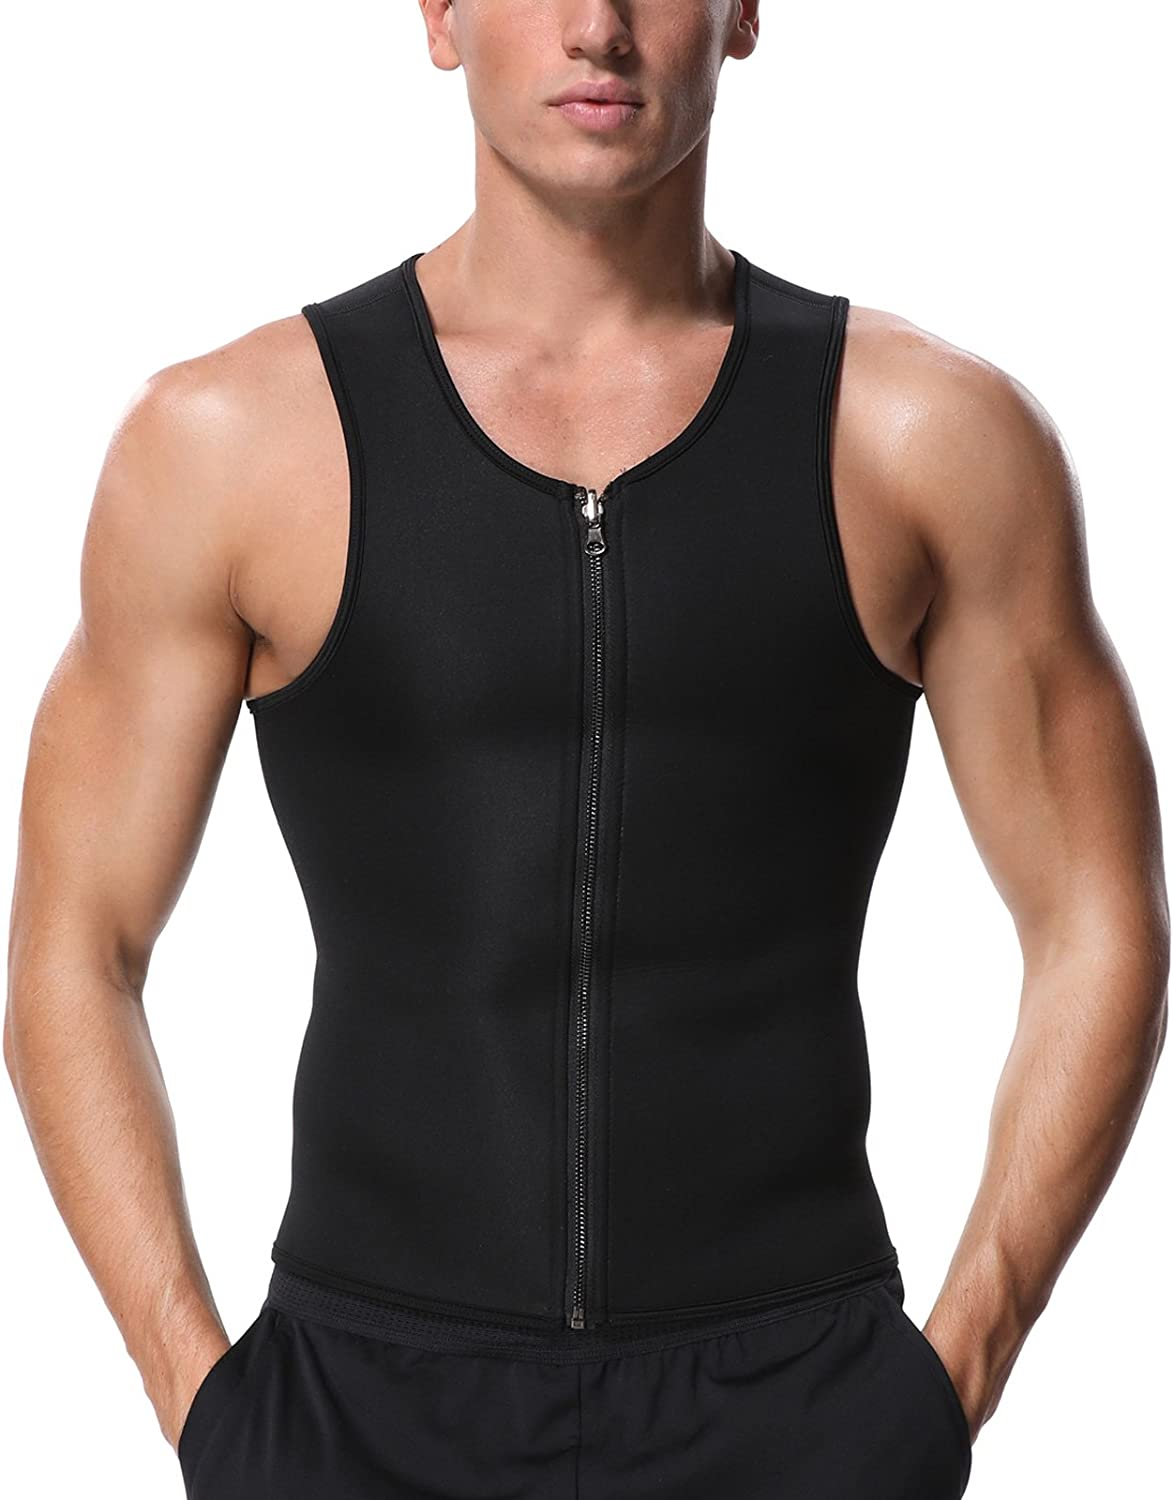 Muscle Building NHEIMA Mens Slimming Neoprene Hot Sweat Vest Sauna Suit Body Shaper for Weight Loss Tummy Mens Workout Tank Shirt Waist Shapers for Lost Weight Cardio Endurance and Core Strength